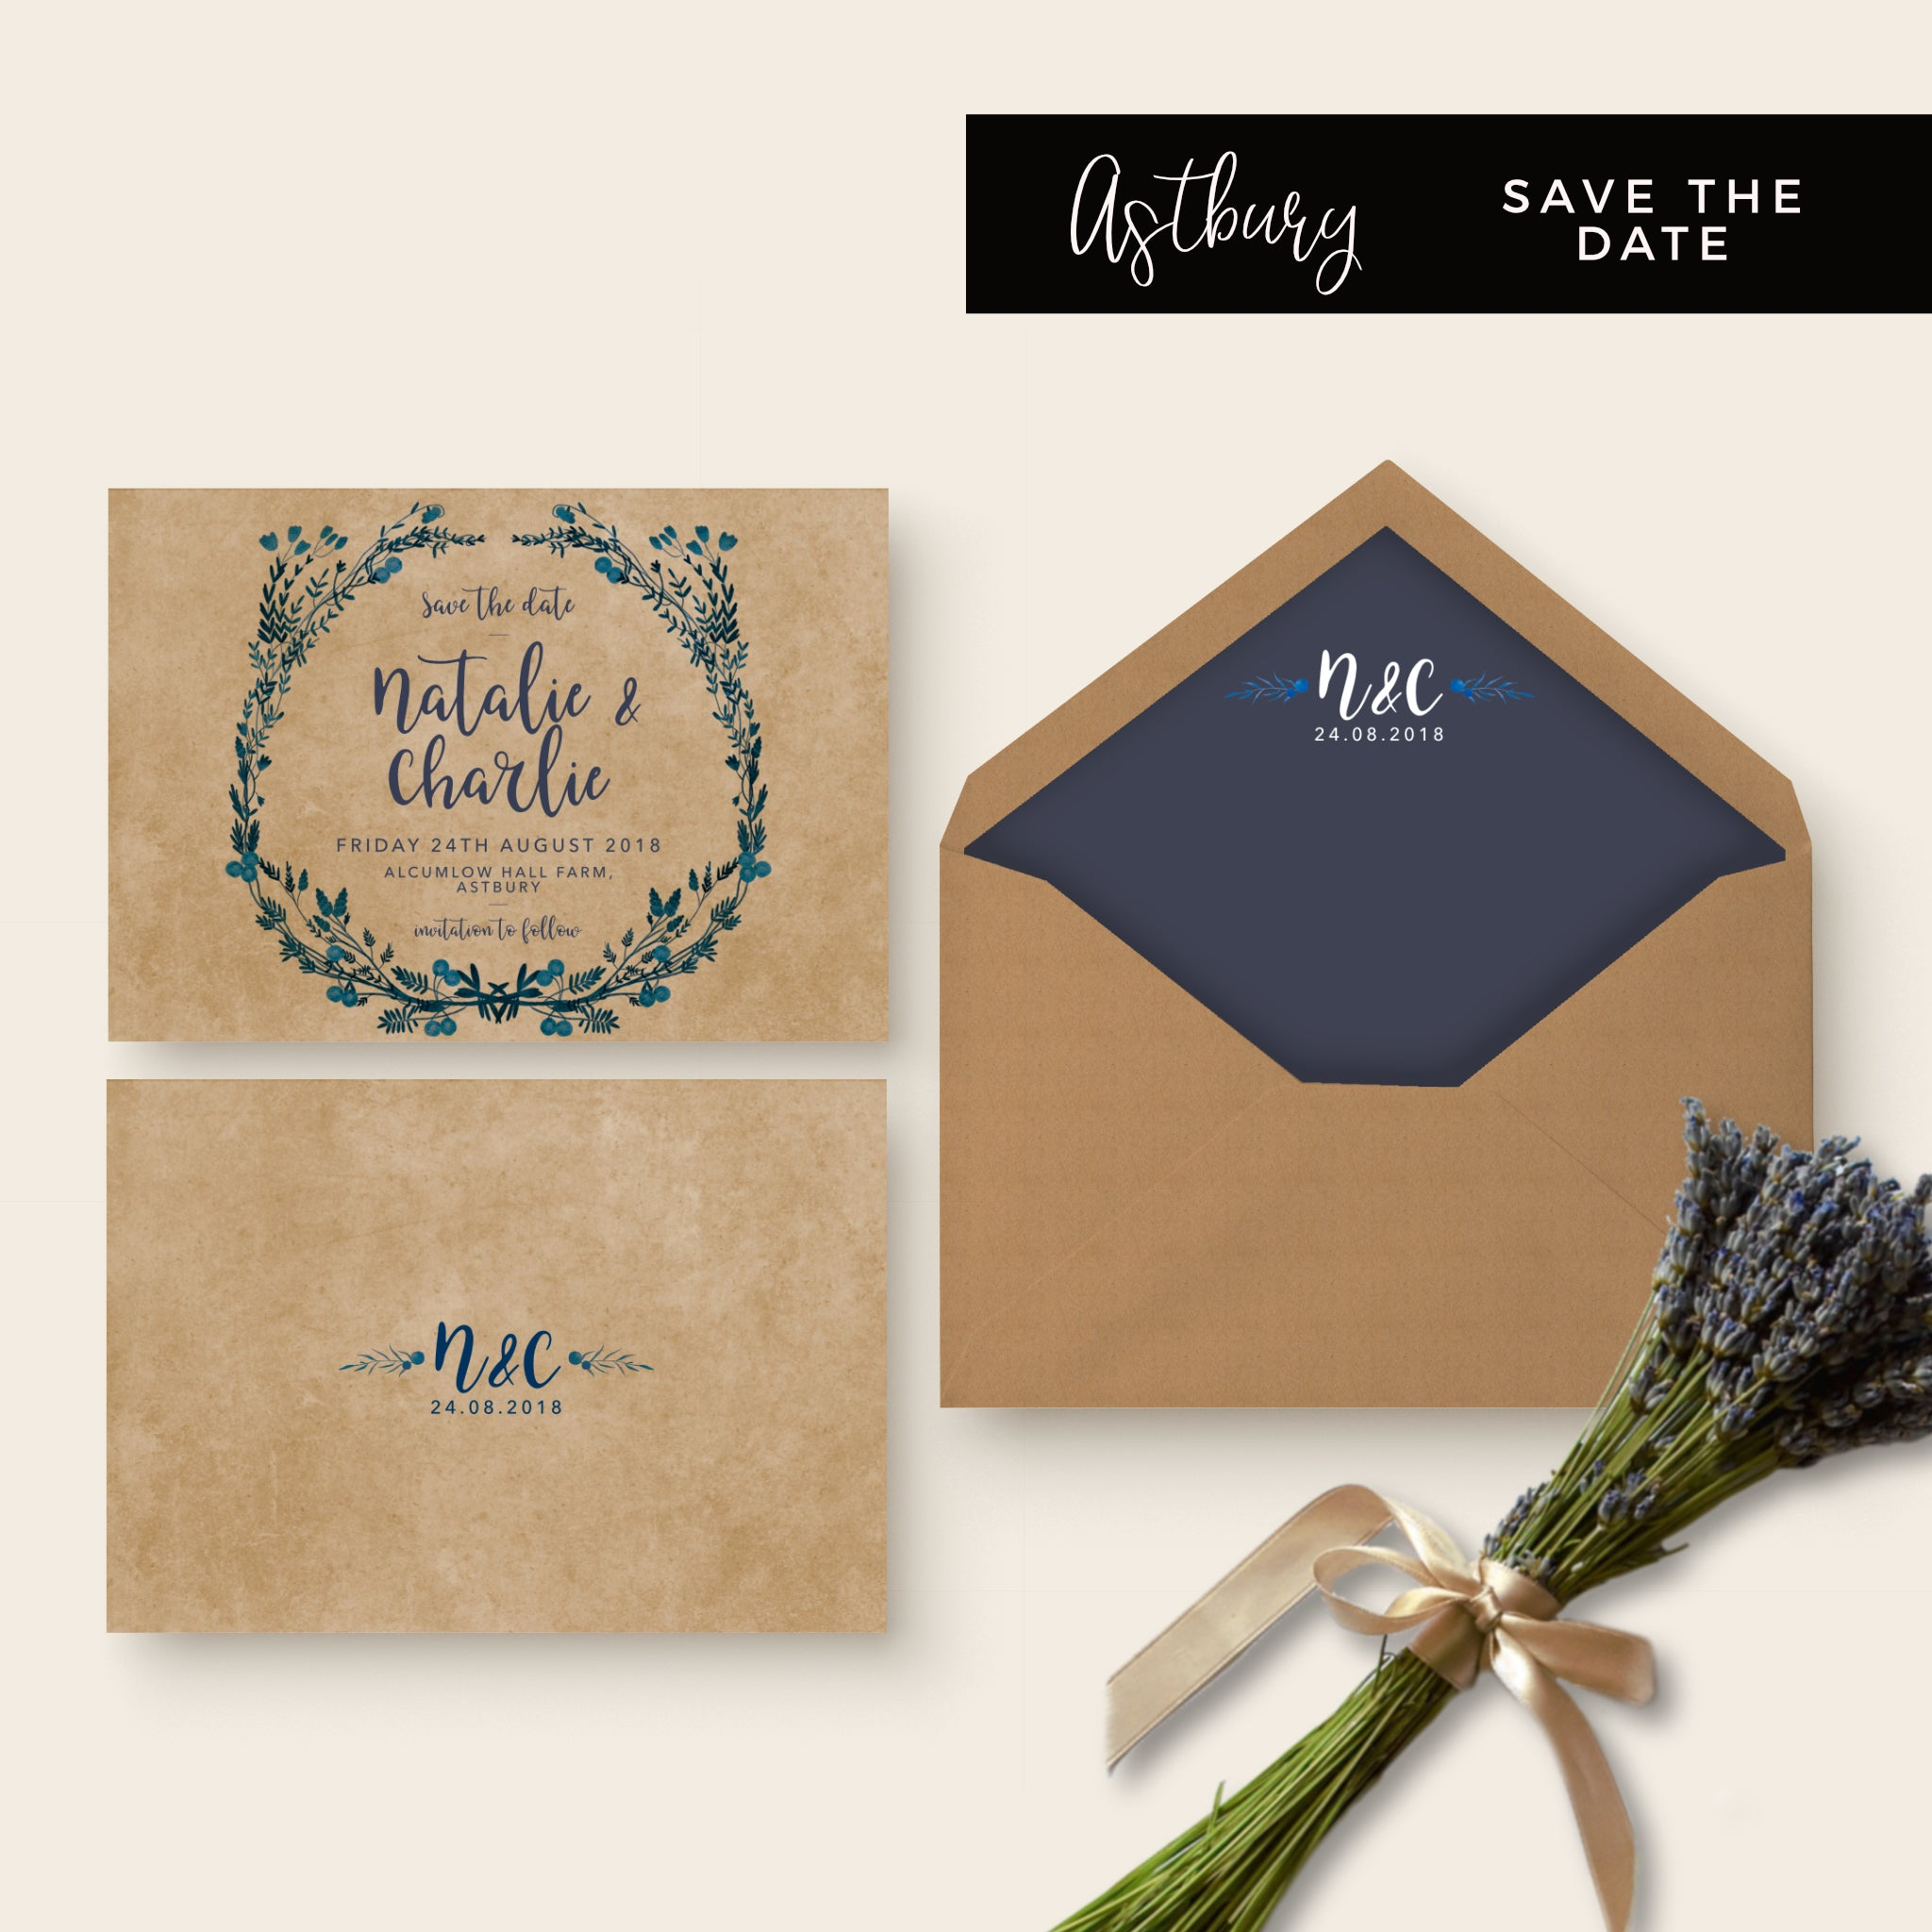 Astbury Personalised Save the Date